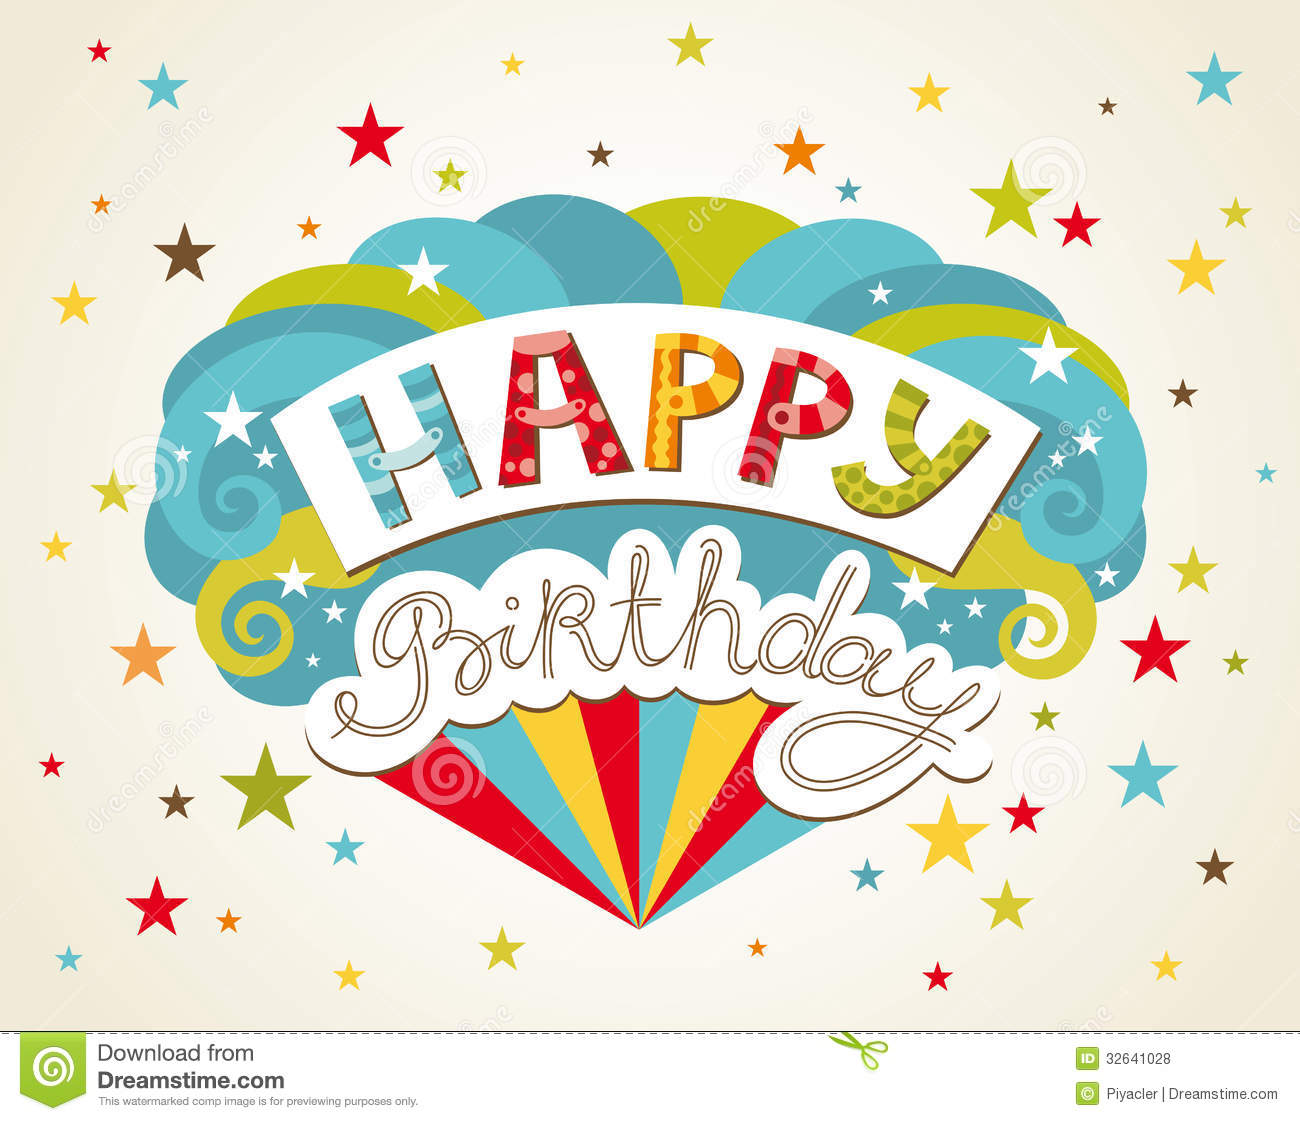 birthday greeting card design free ; happy-birthday-greeting-card-design-vector-illustration-32641028